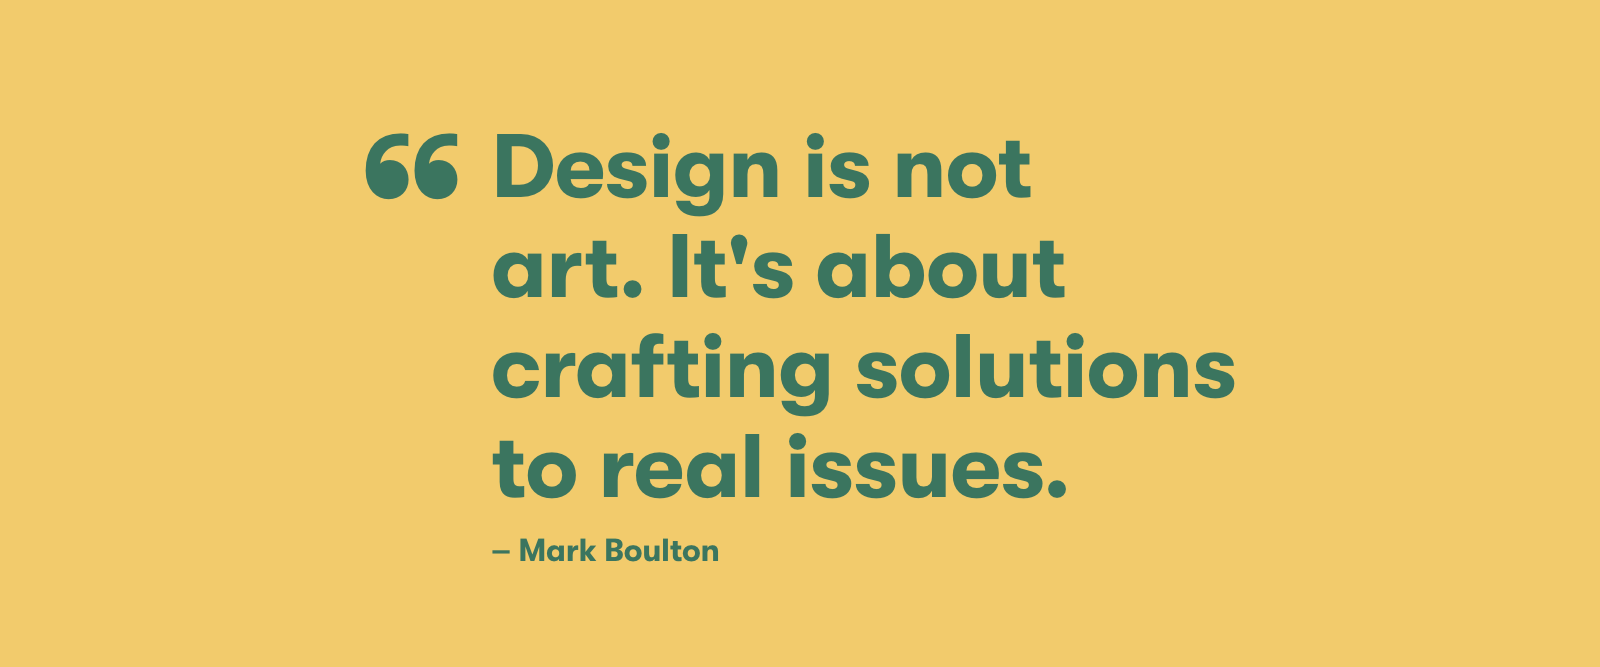 Design is not art. It's about crafting solutions to real issues.